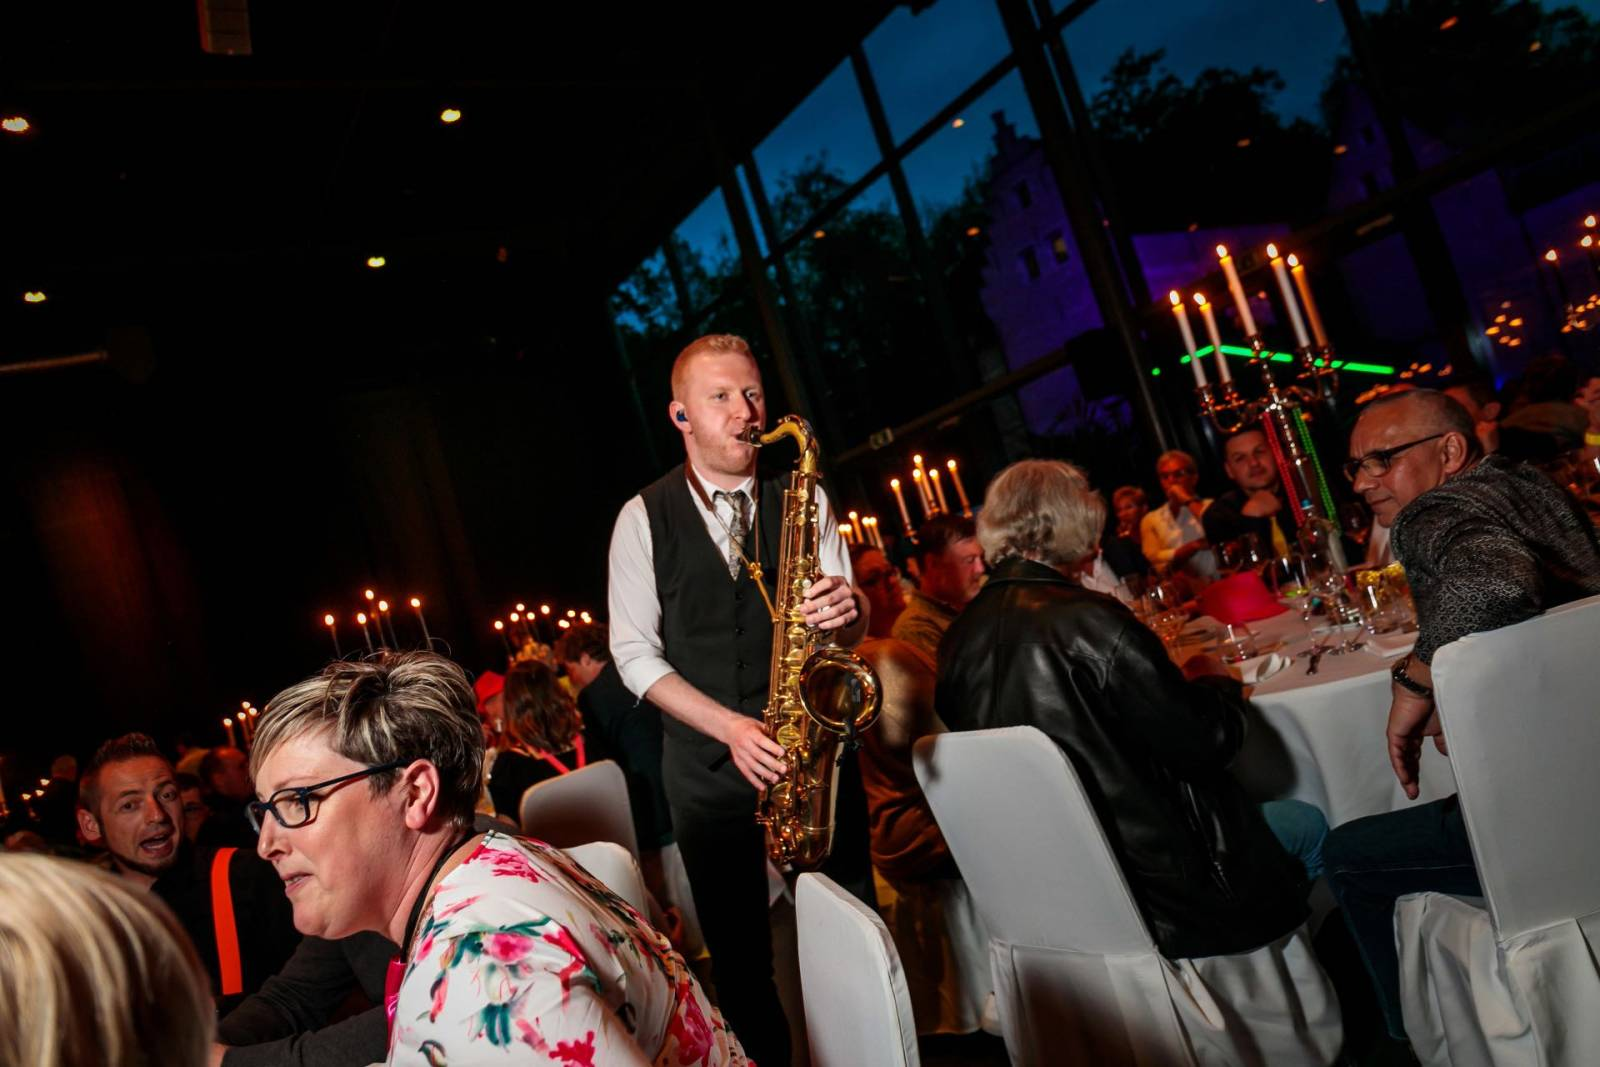 Aces - muziek event - coverband - House of Events - 11